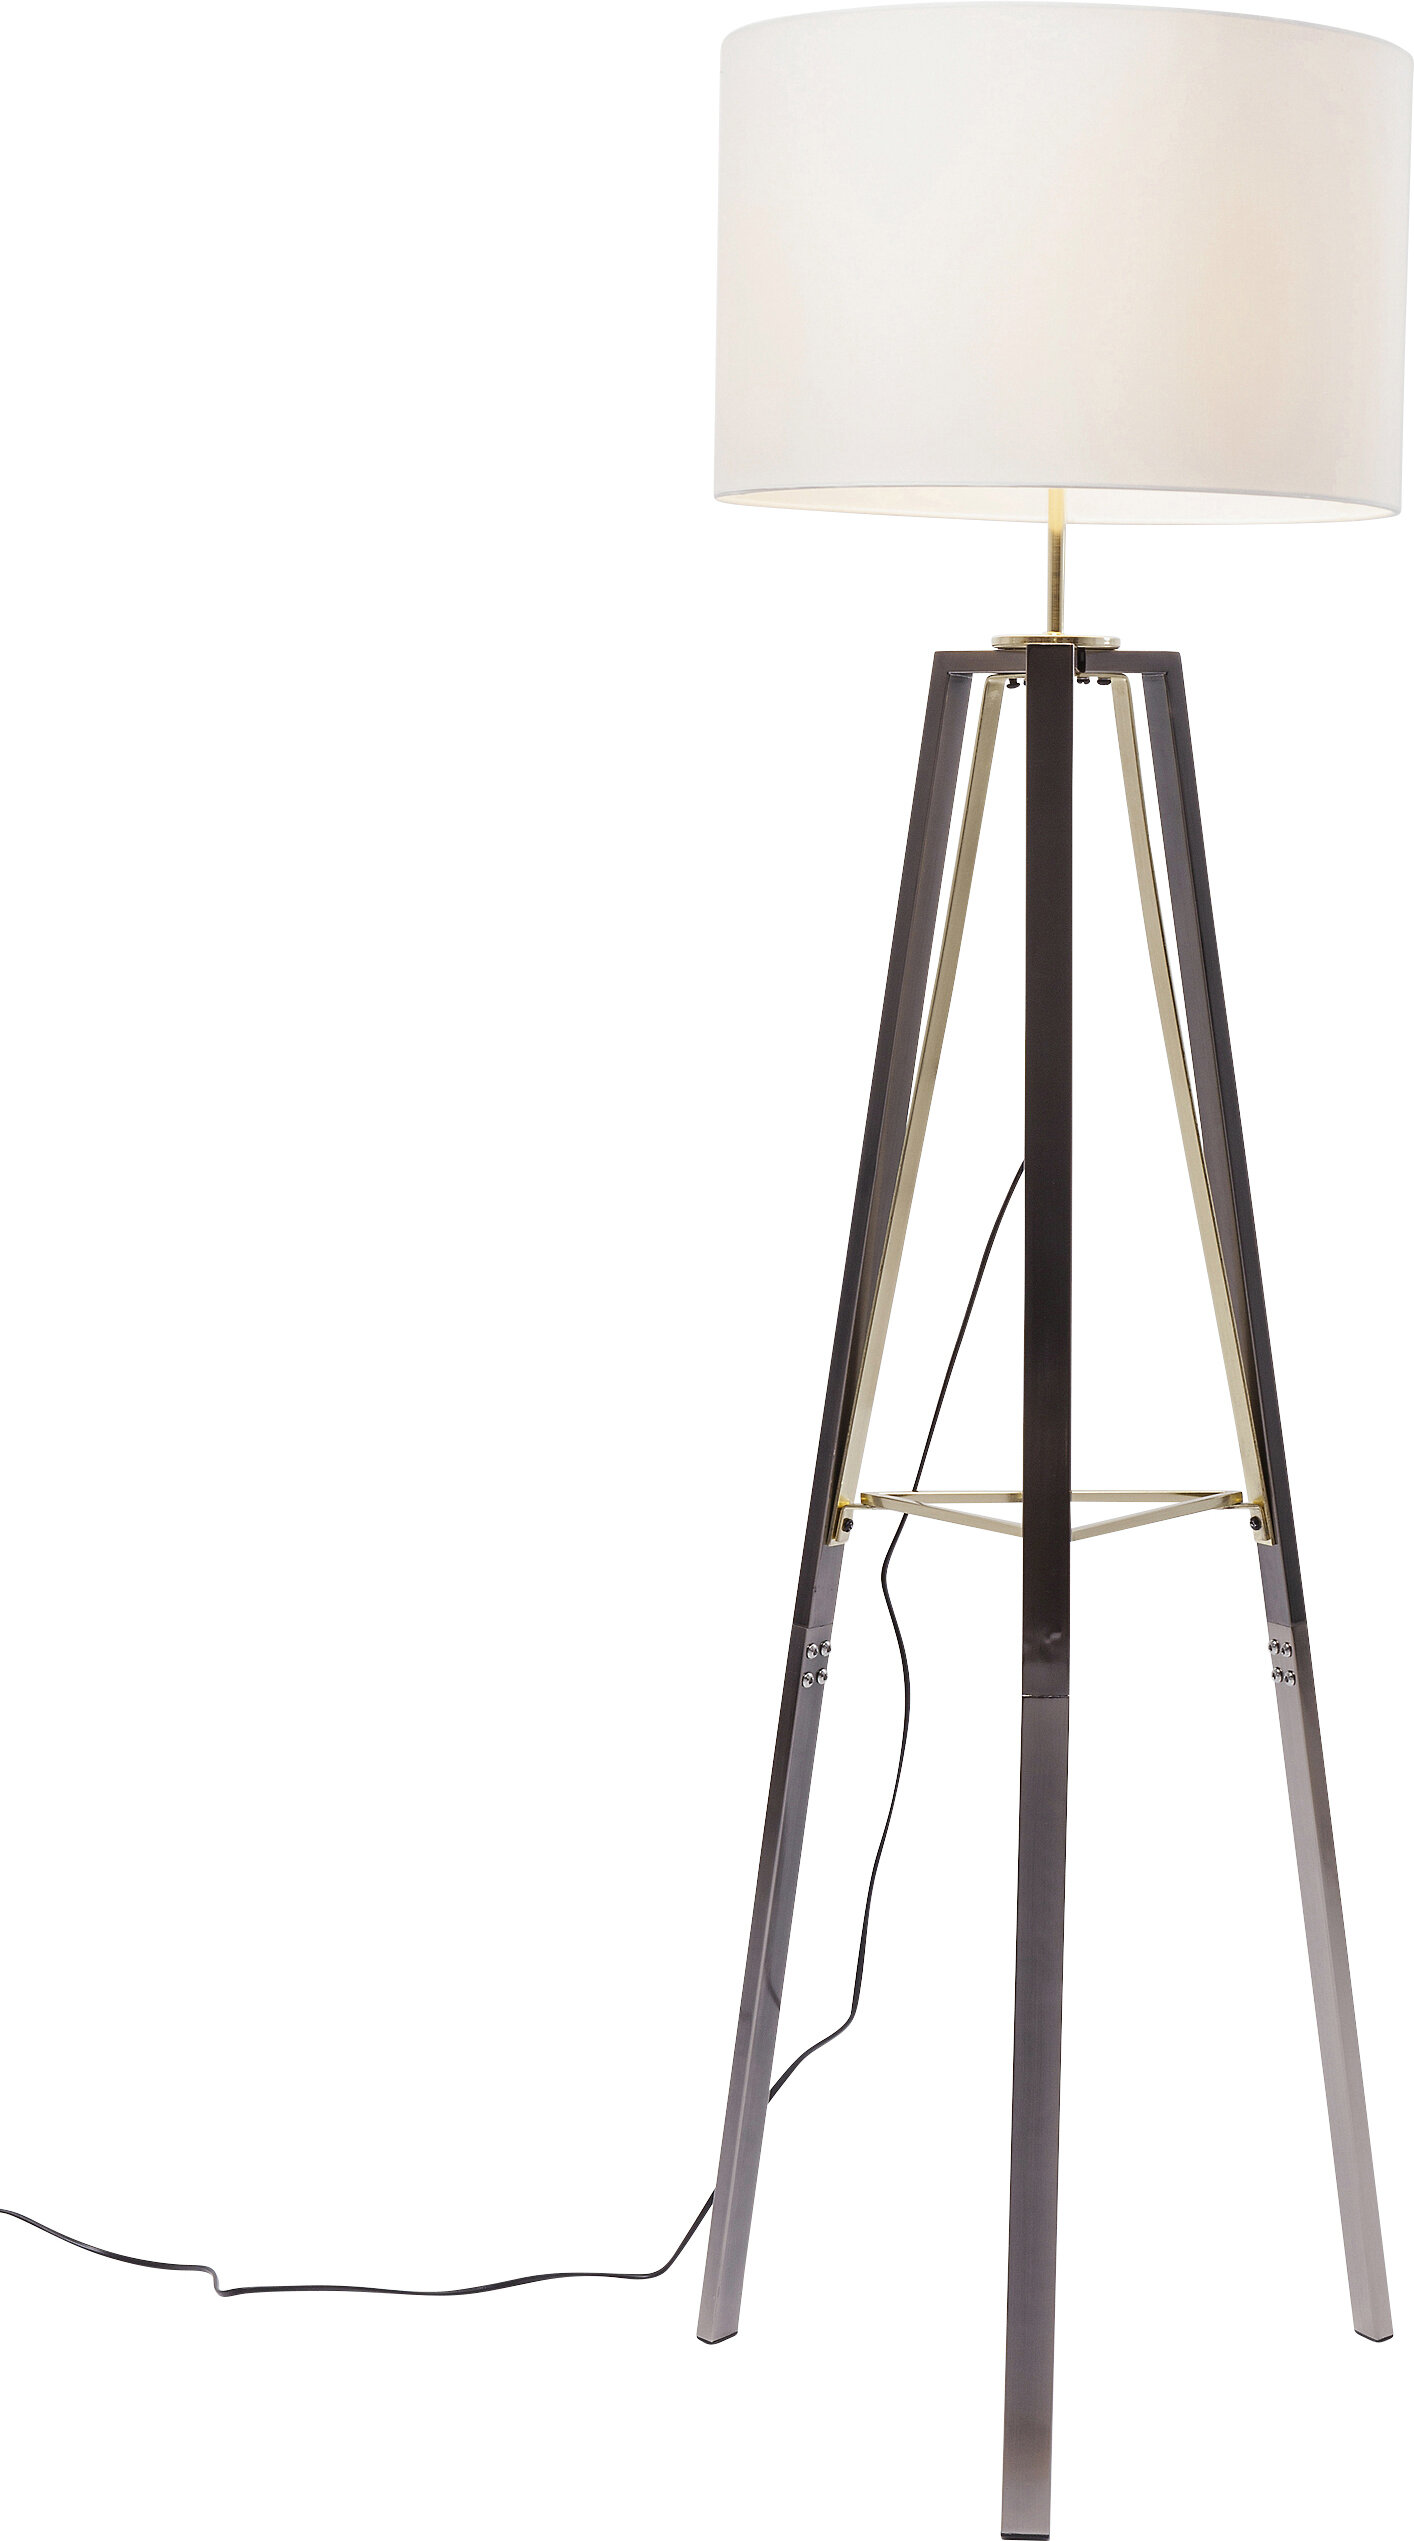 Kare Design 152 Cm Tripod Stehlampe Think Wayfair De